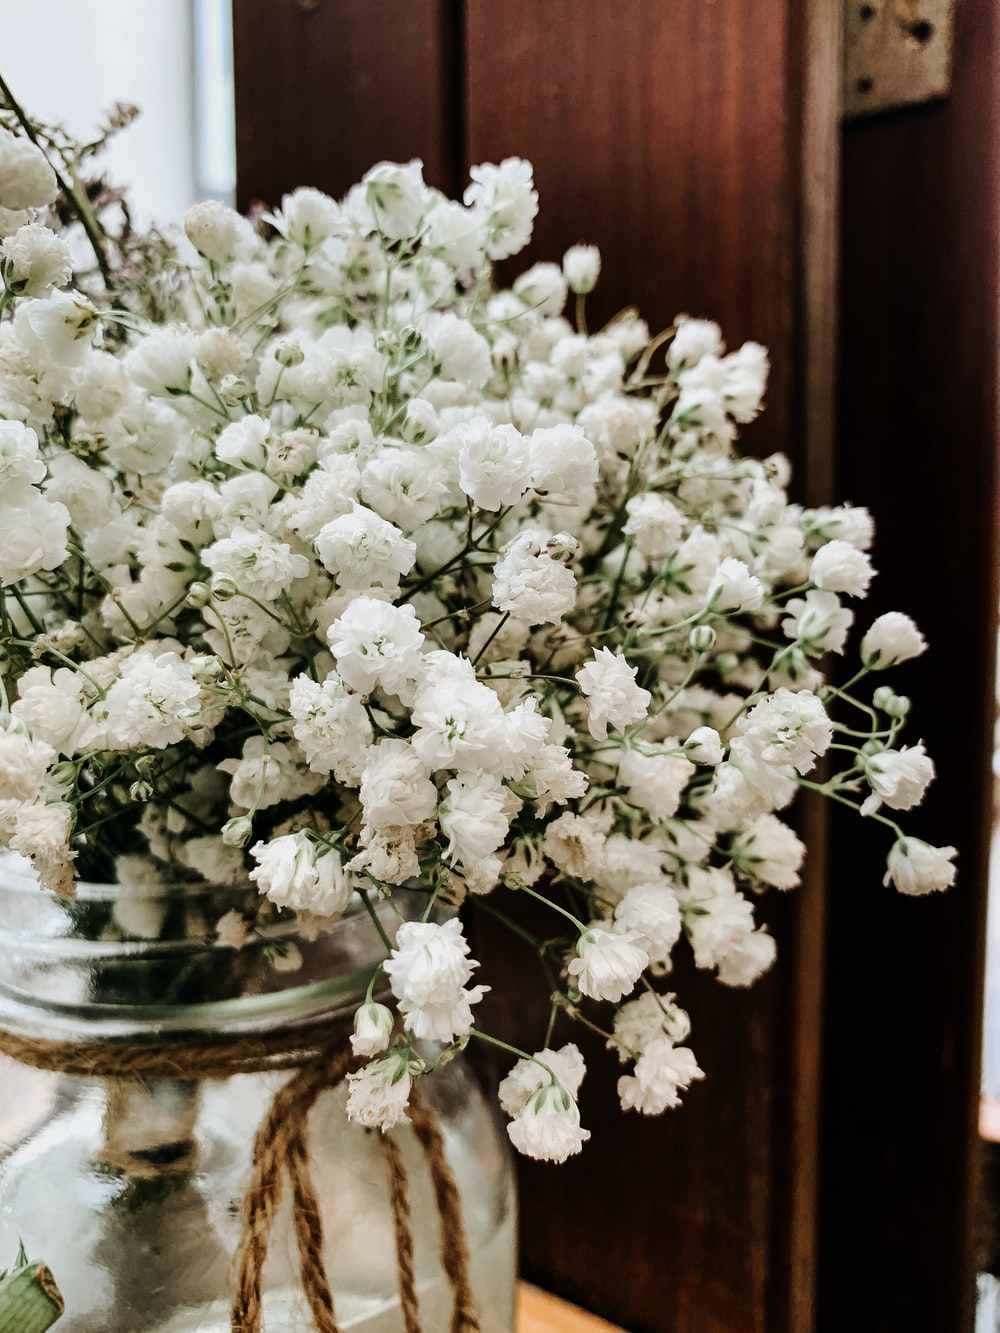 white flowers on clear glass vase